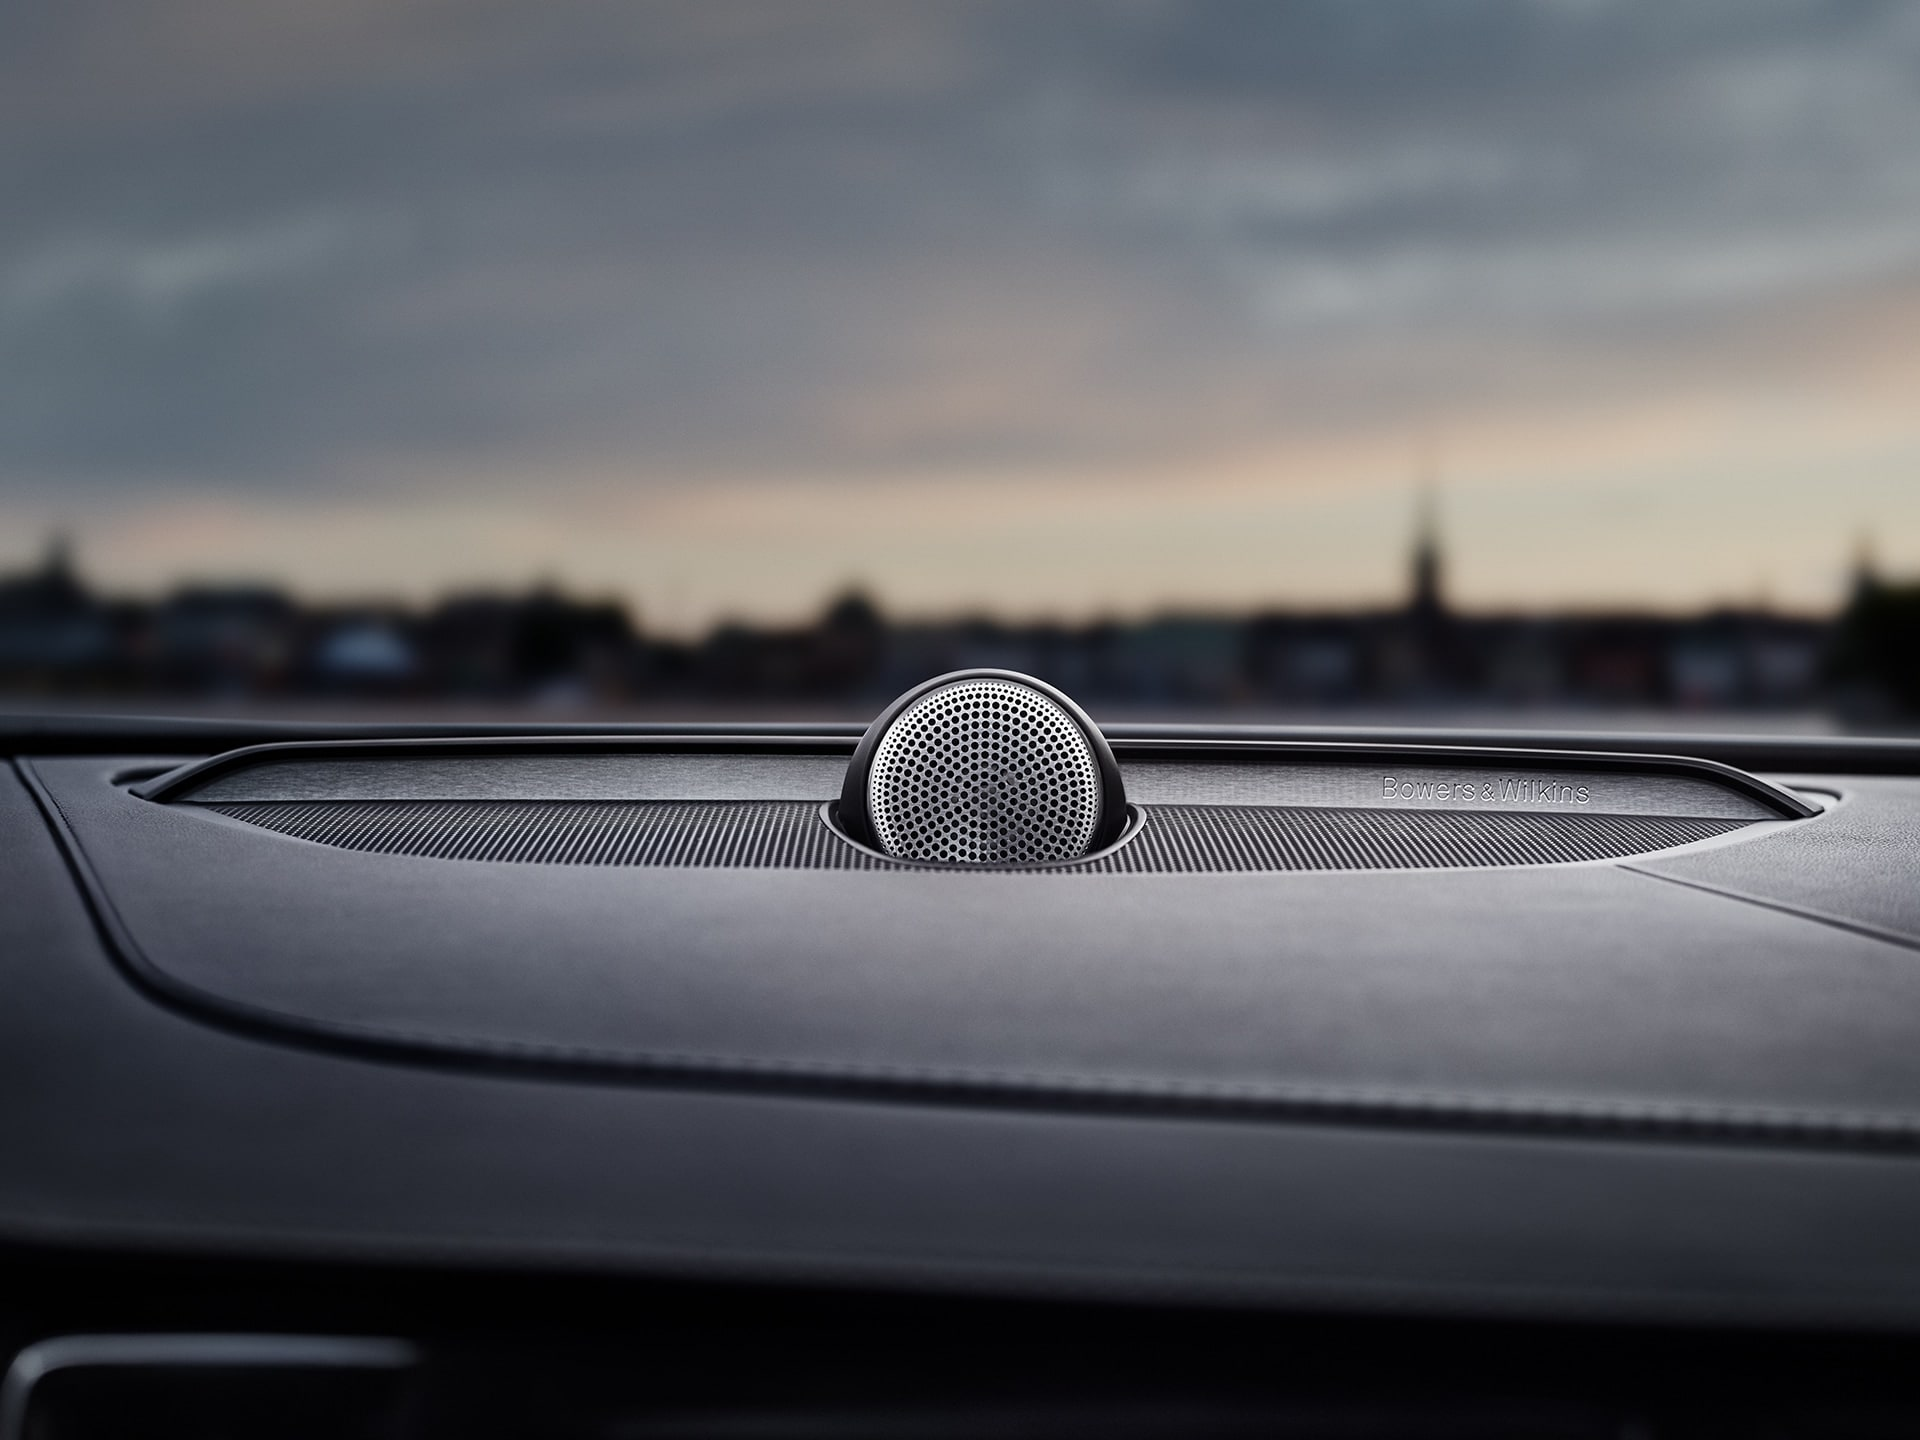 Altoparlante Bowers & Wilkins all'interno di una Volvo XC90